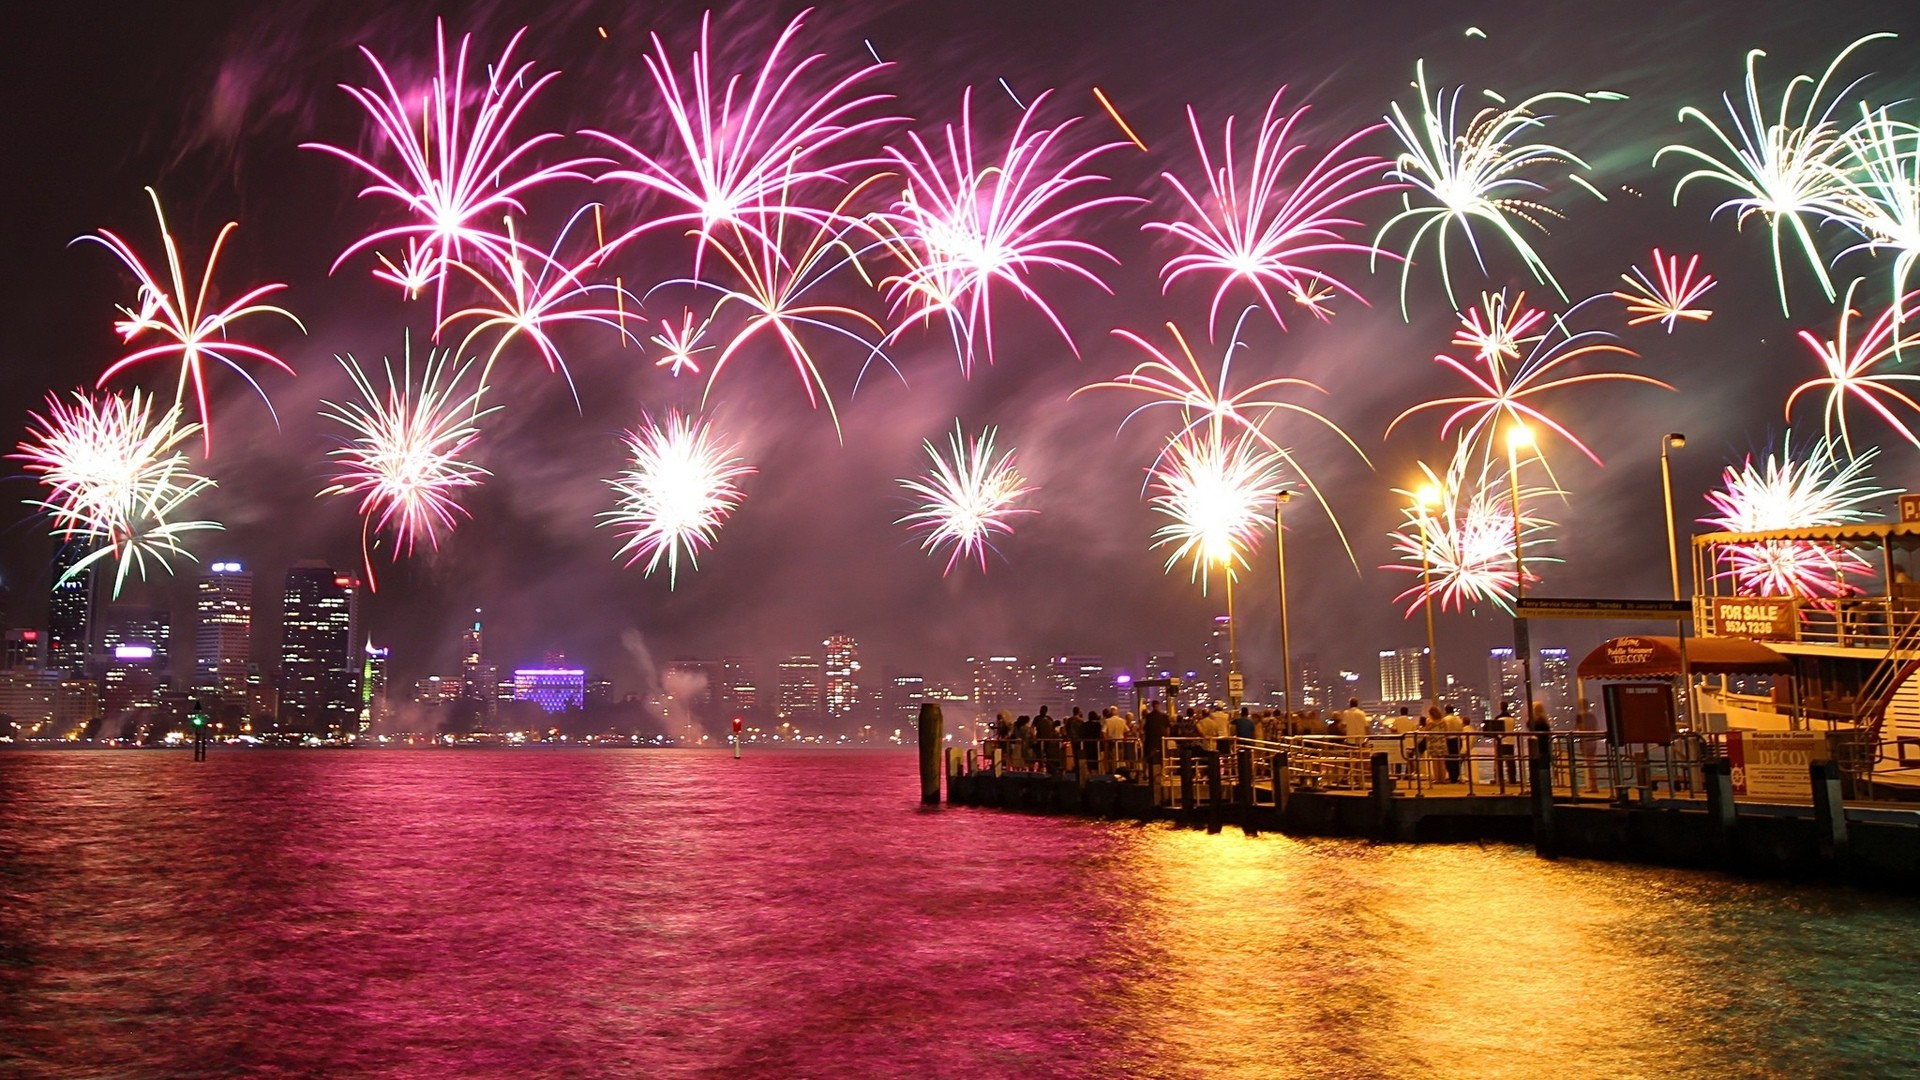 1920x1080 New Year 4th fourth july holidays fireworks color sparkle bright light .